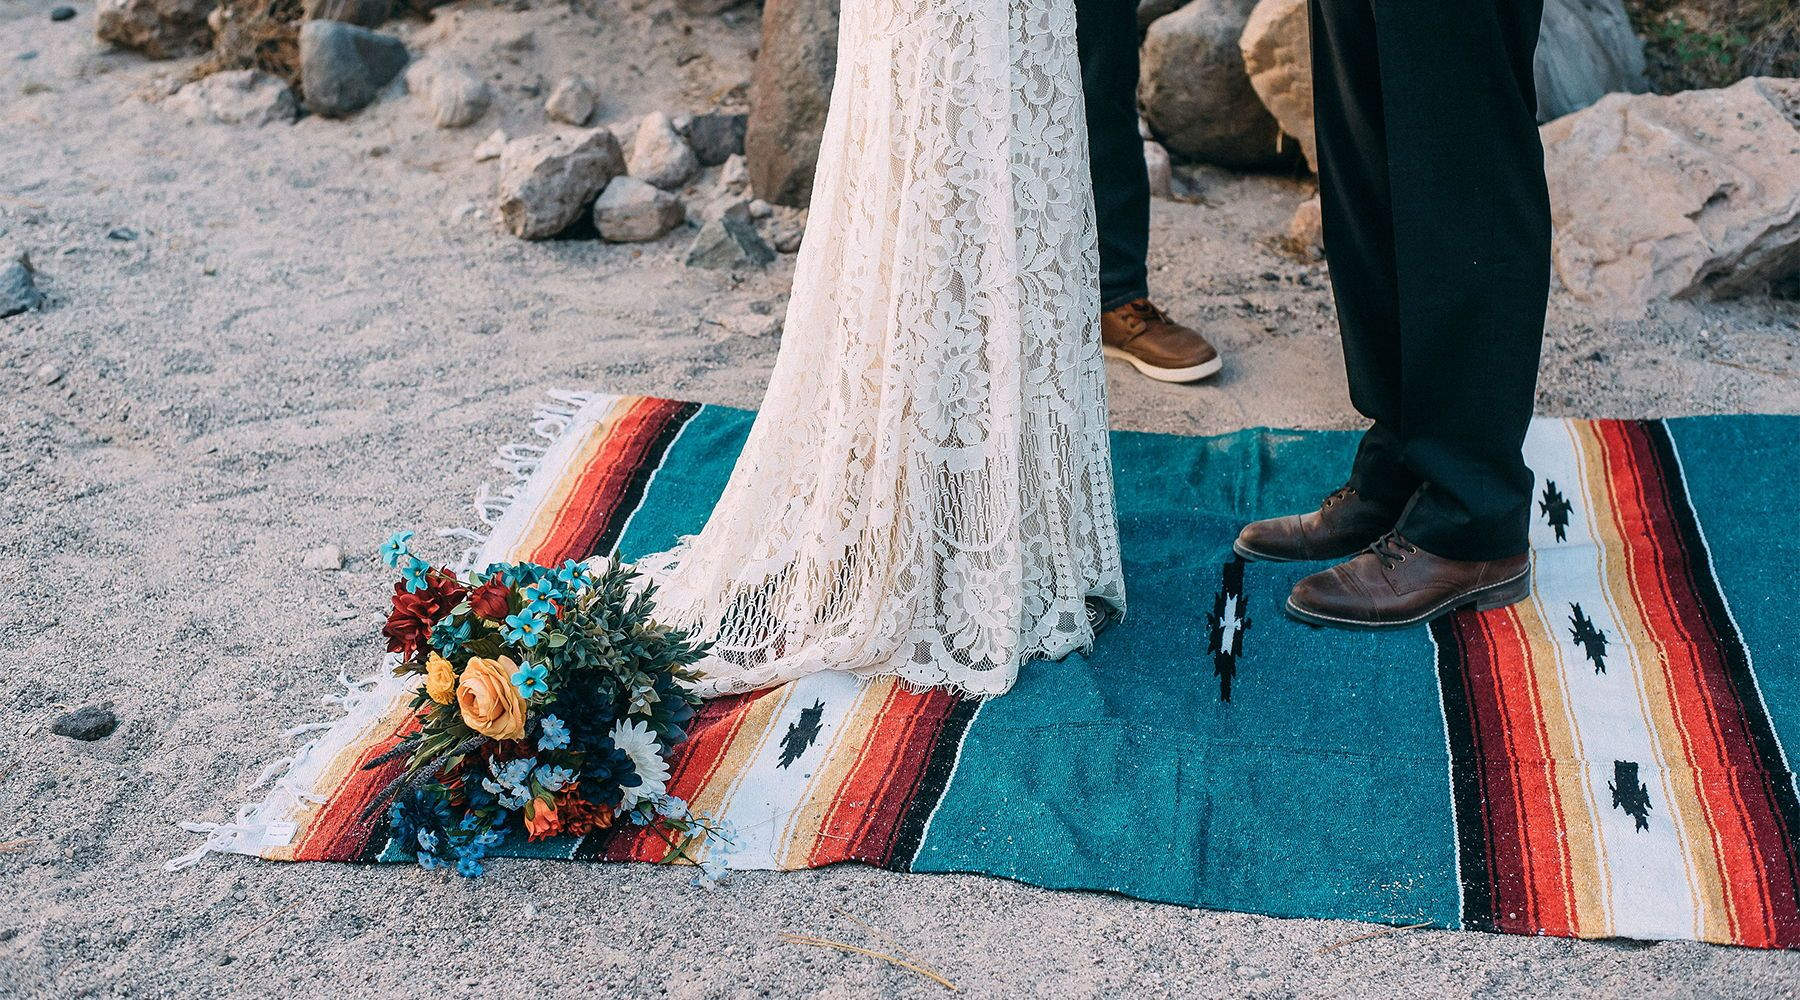 Wedding Decor Hacks: Trek Light Gear Blankets